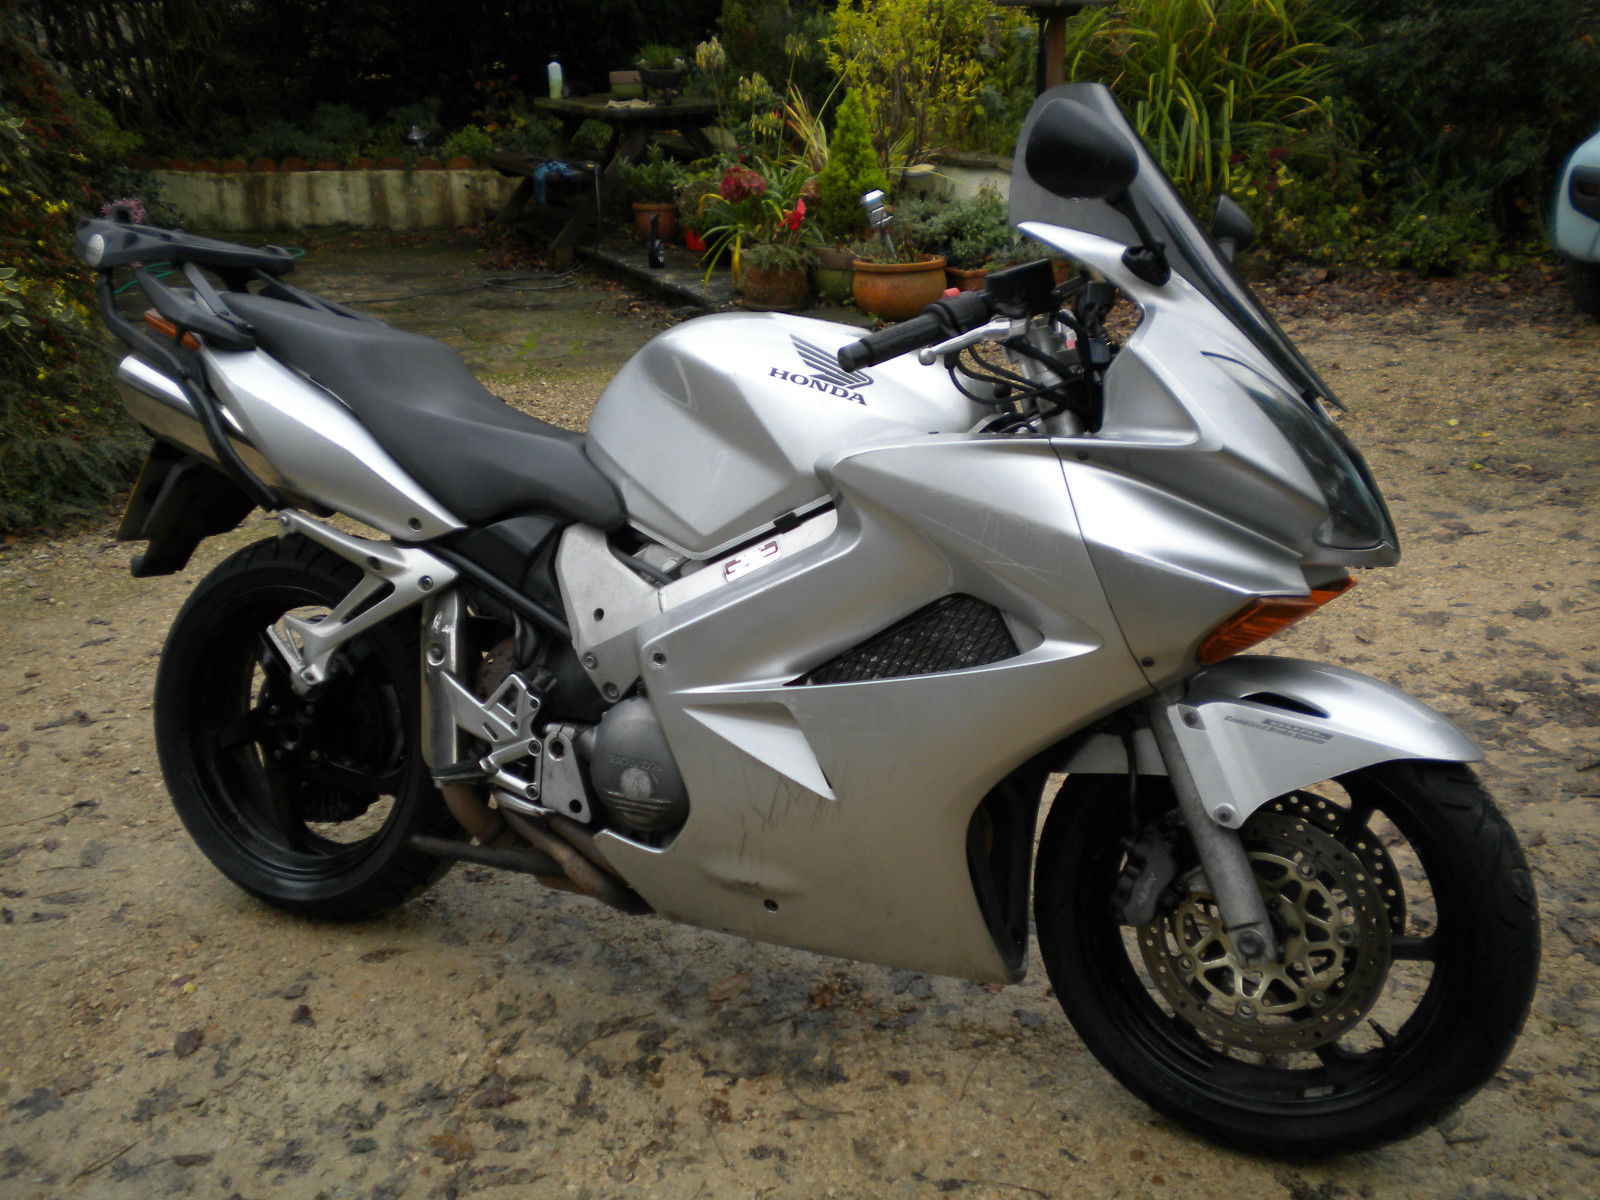 2003 honda vfr 800 3 silver. Black Bedroom Furniture Sets. Home Design Ideas